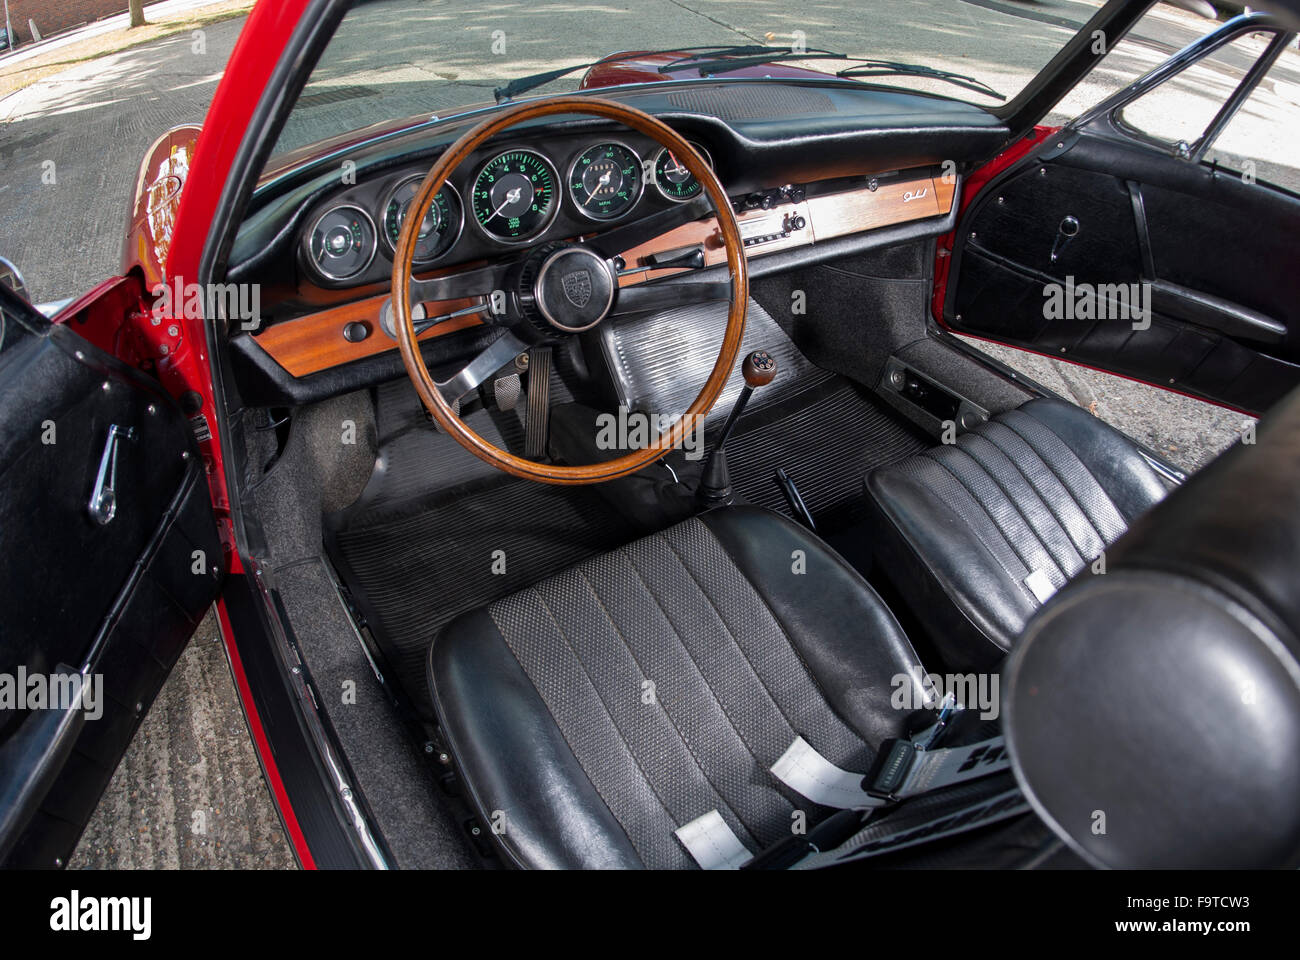 1966 Porsche 911 Classic German Air Cooled Sports Car Interior Stock Photo Alamy